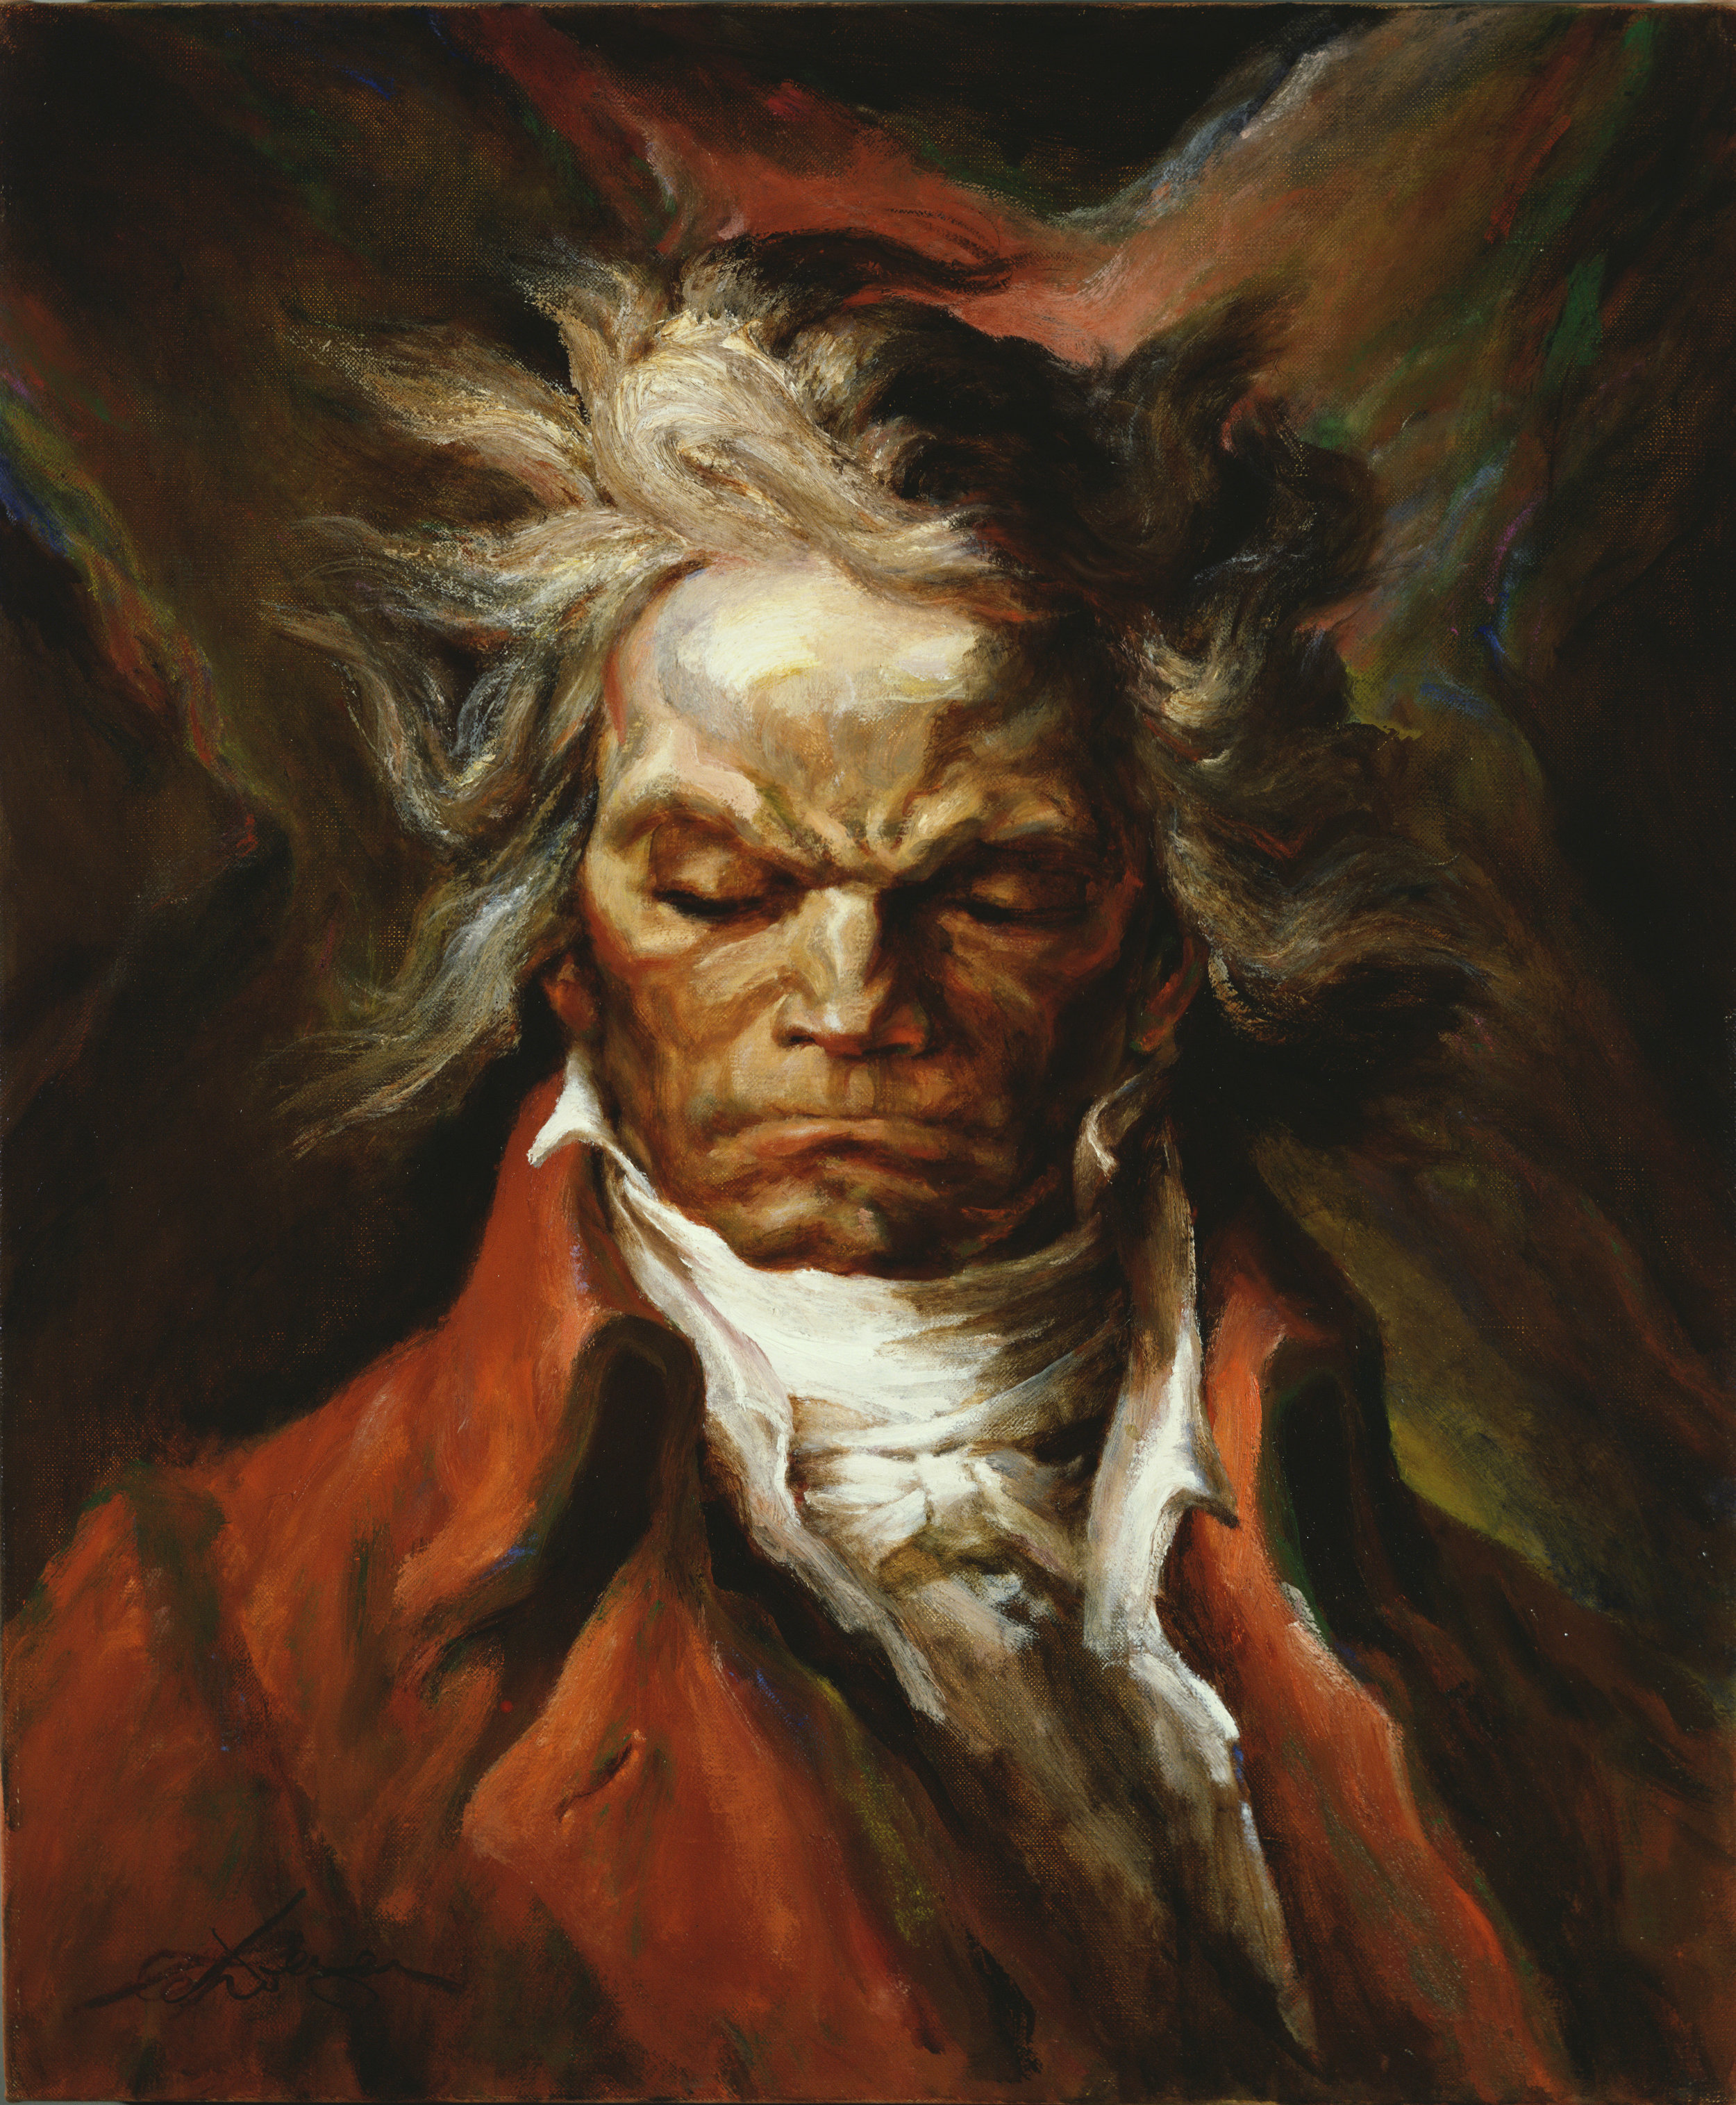 Painted for The Beethoven Society (Oil on Canvas, 24 x 20 in.)